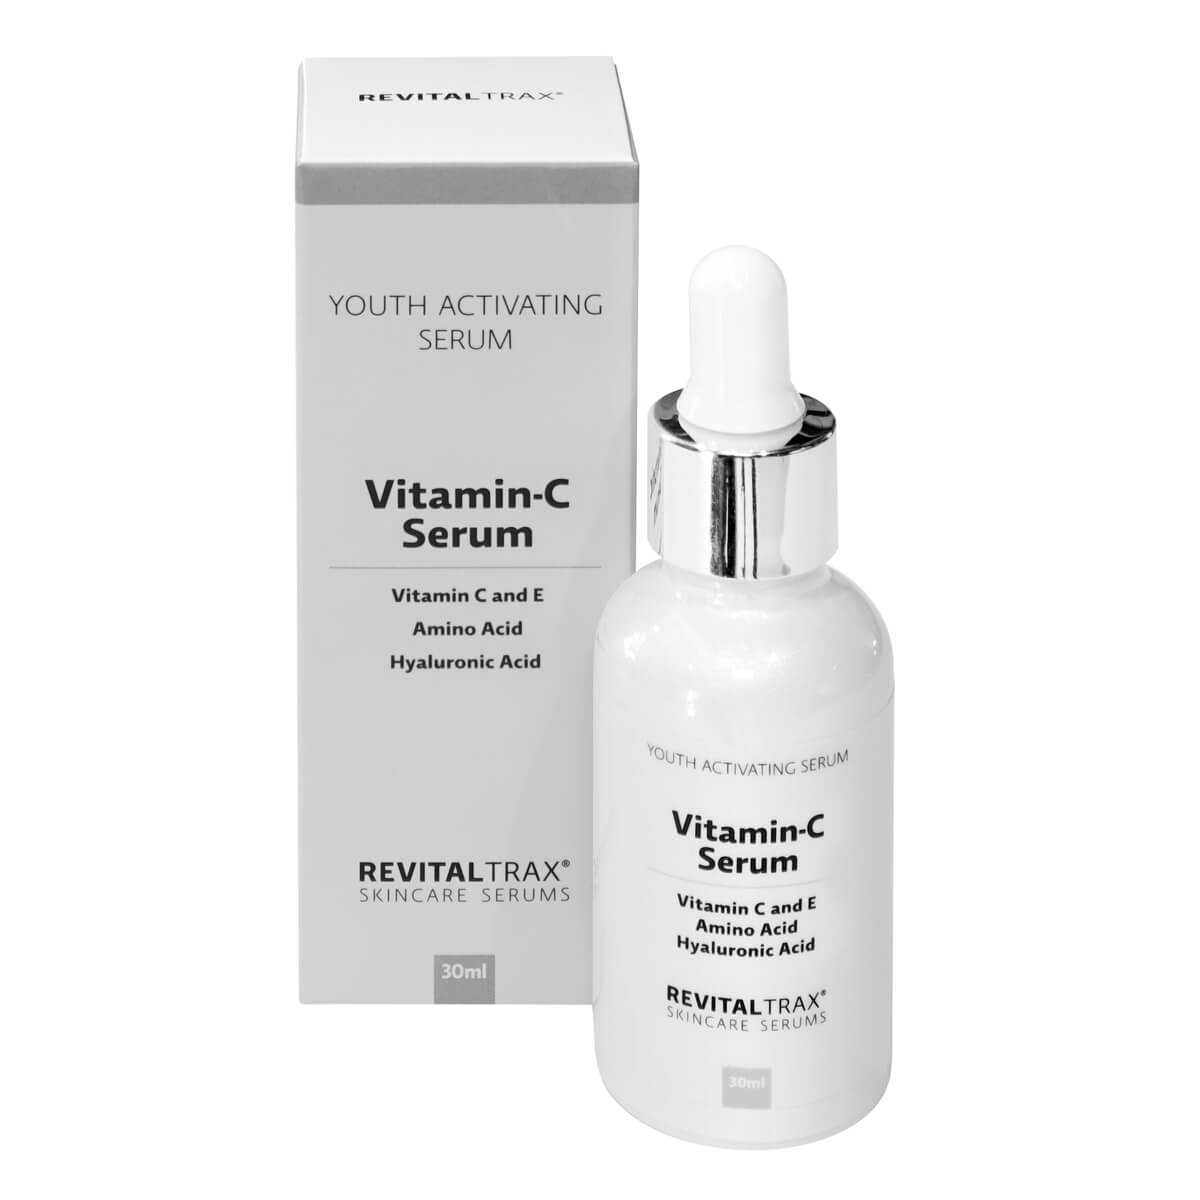 RevitalTrax Vitamin-C Serum with vitamins C and E, amino acid and hyaluronic acid